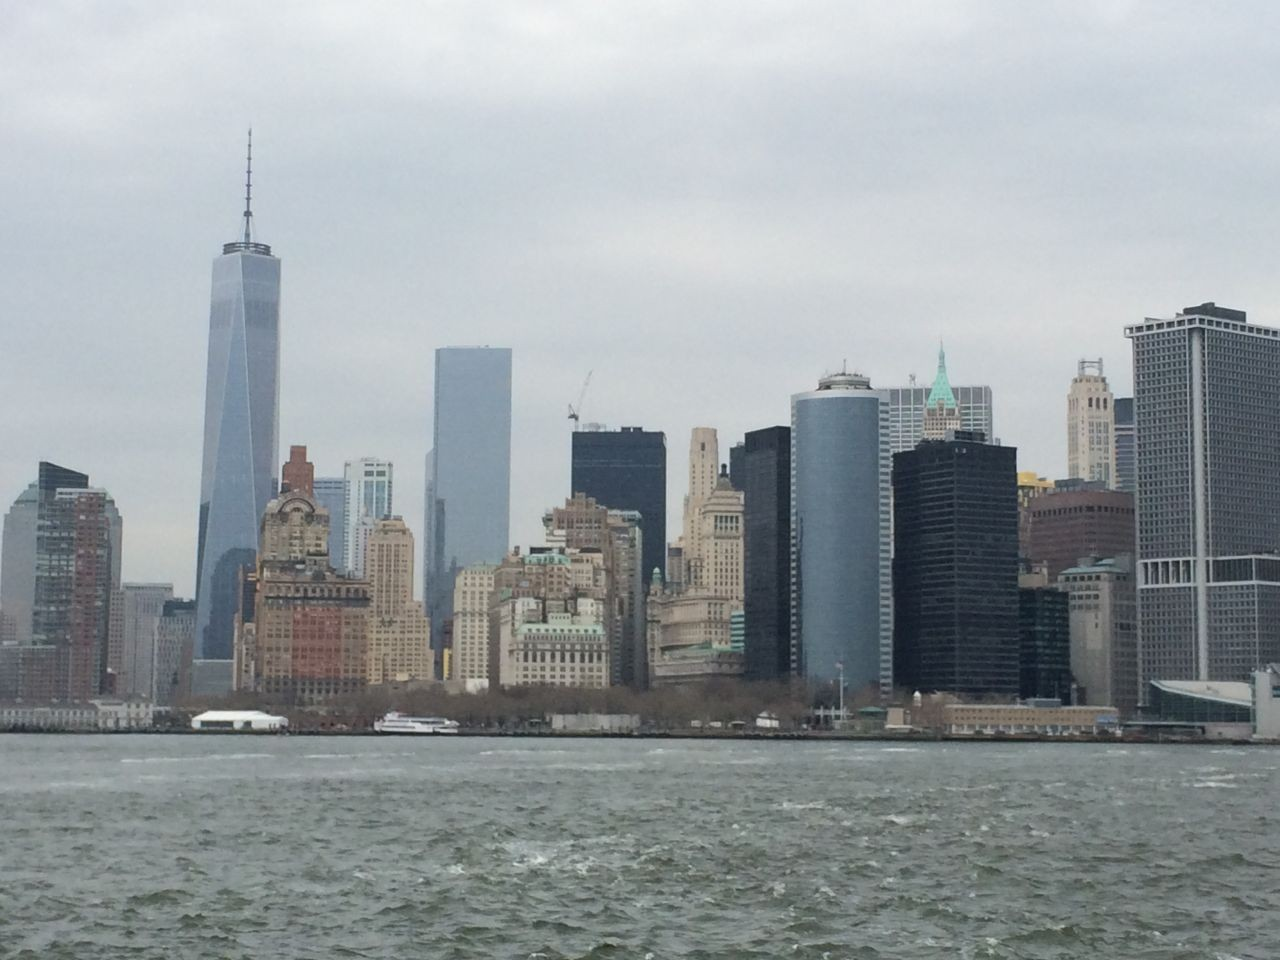 Touring New York City with Celiac Disease and a Peanut Allergy